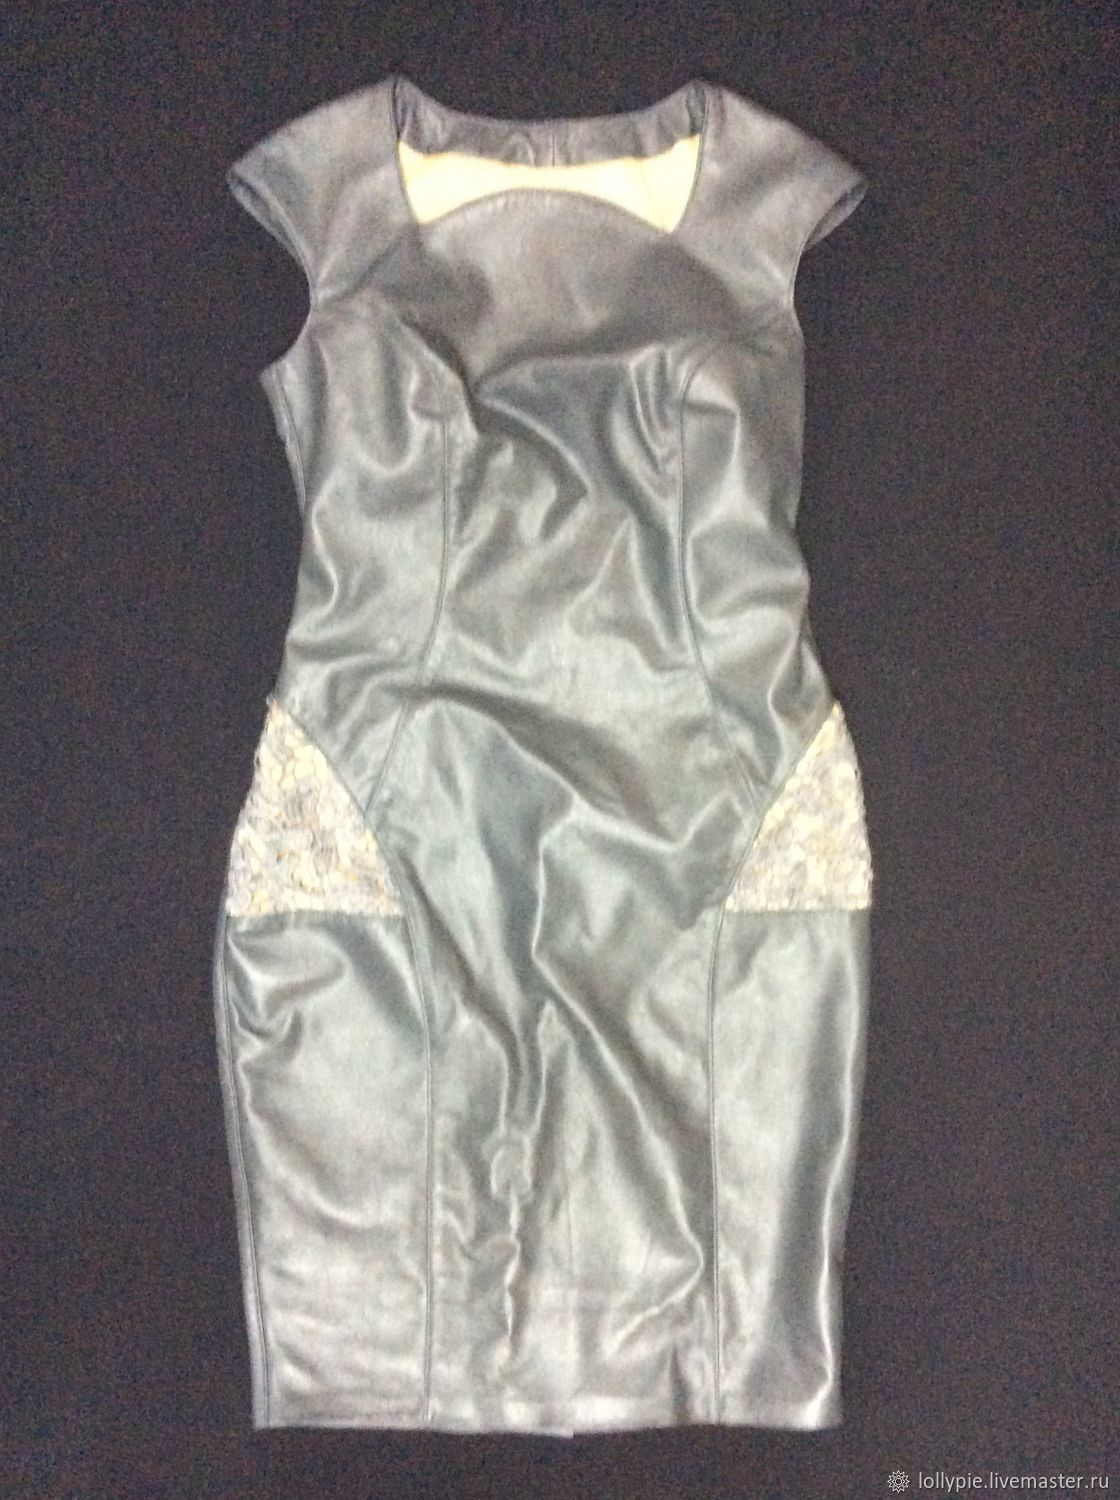 Genuine leather dress with lace, Dresses, Moscow,  Фото №1